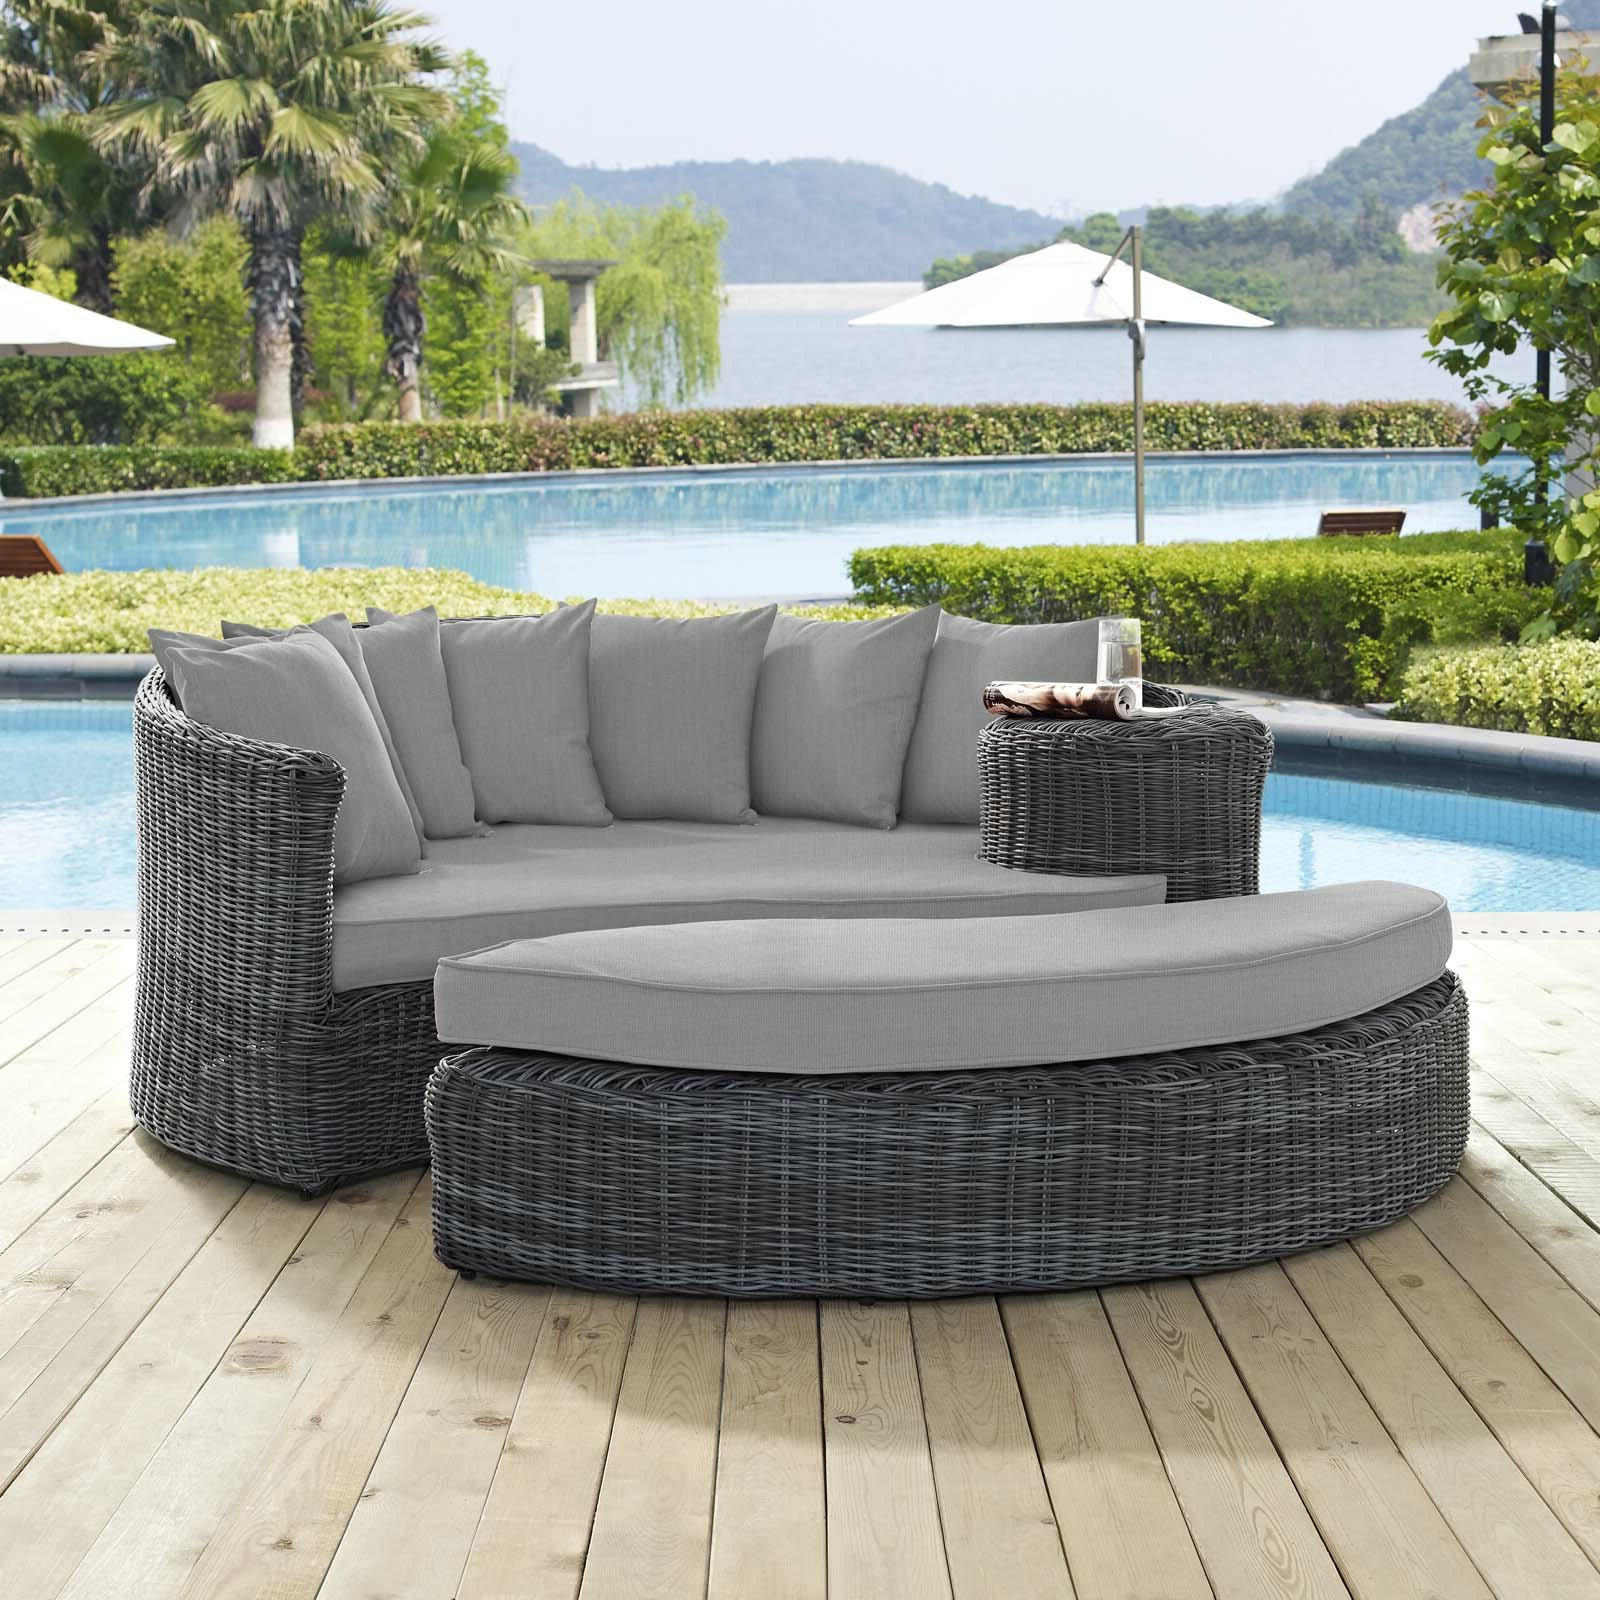 Falmouth Patio Daybeds With Cushions With Regard To 2019 Keiran Patio Daybed With Cushions (View 6 of 20)